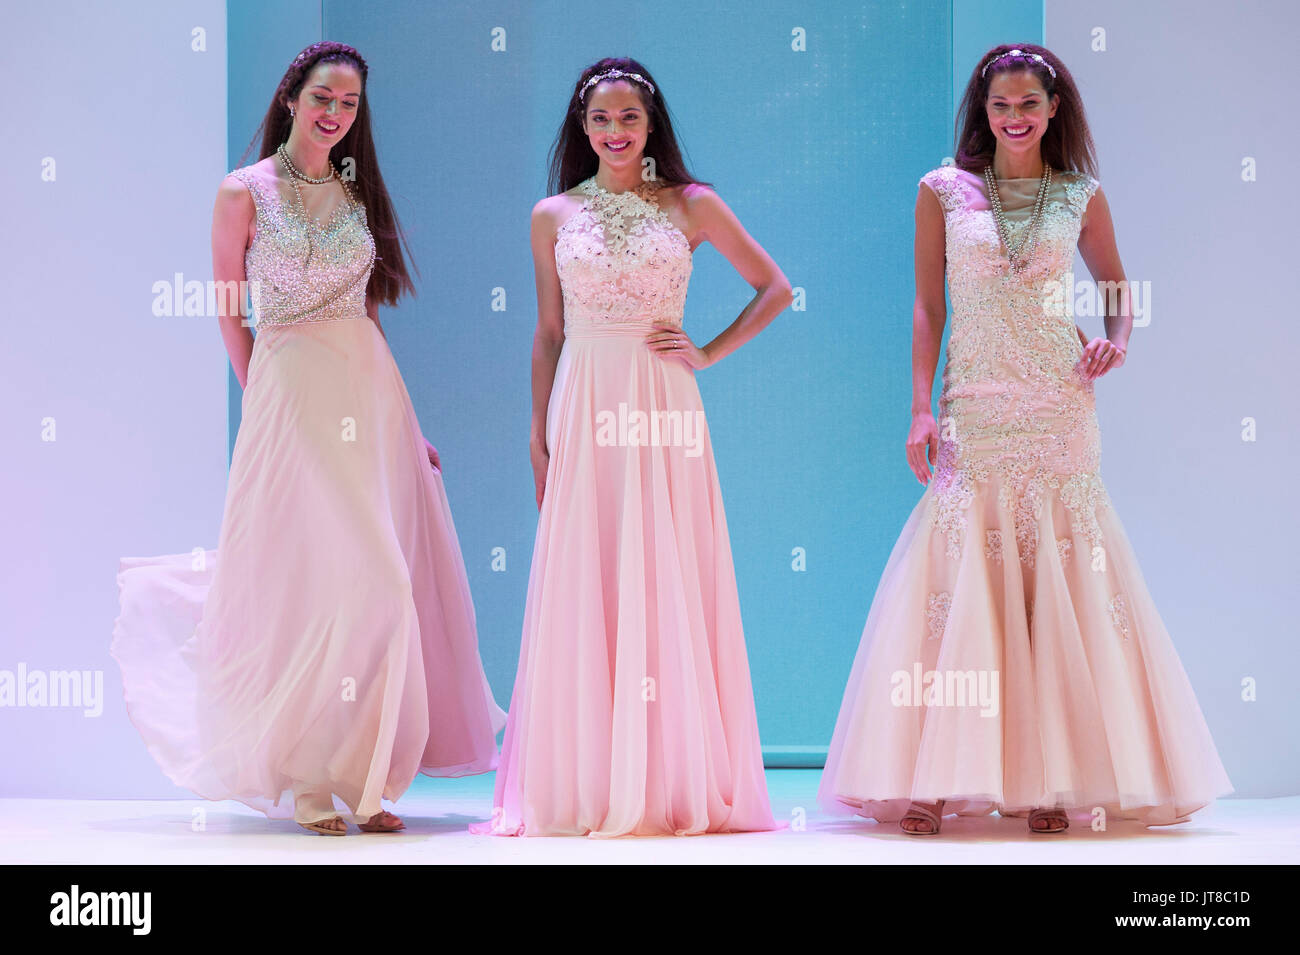 Prom Dresses Stock Photos & Prom Dresses Stock Images - Alamy